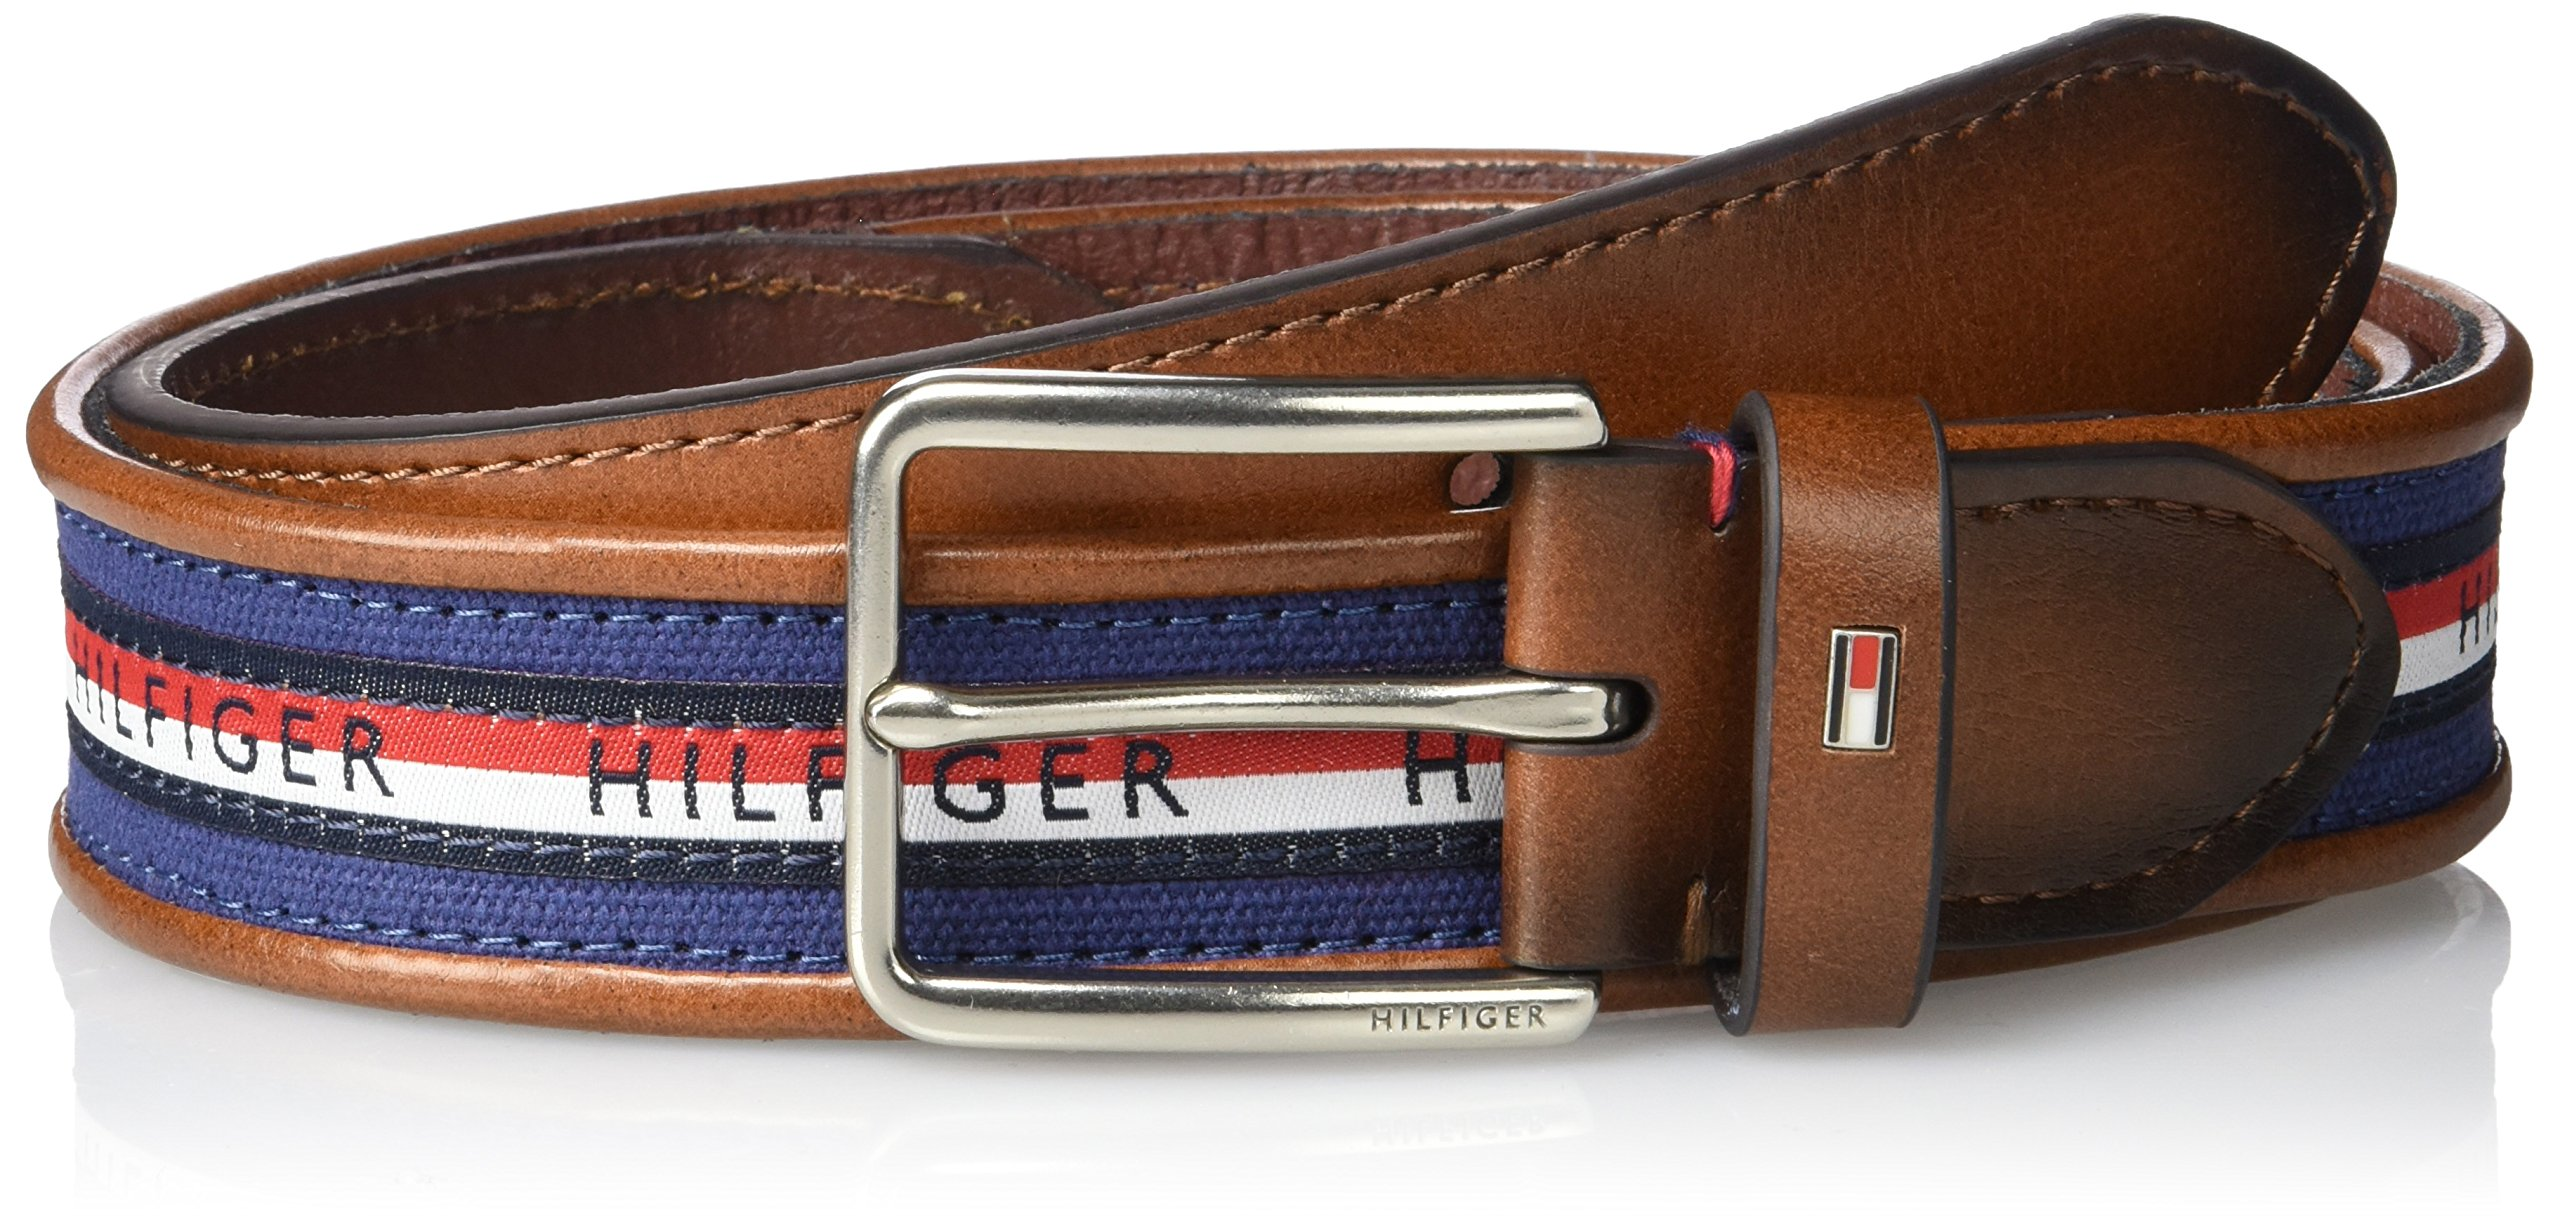 Tommy Hilfiger Men's Ribbon Inlay Belt - Fabric Belt with Single Prong Buckle, Navy Stripe, 42